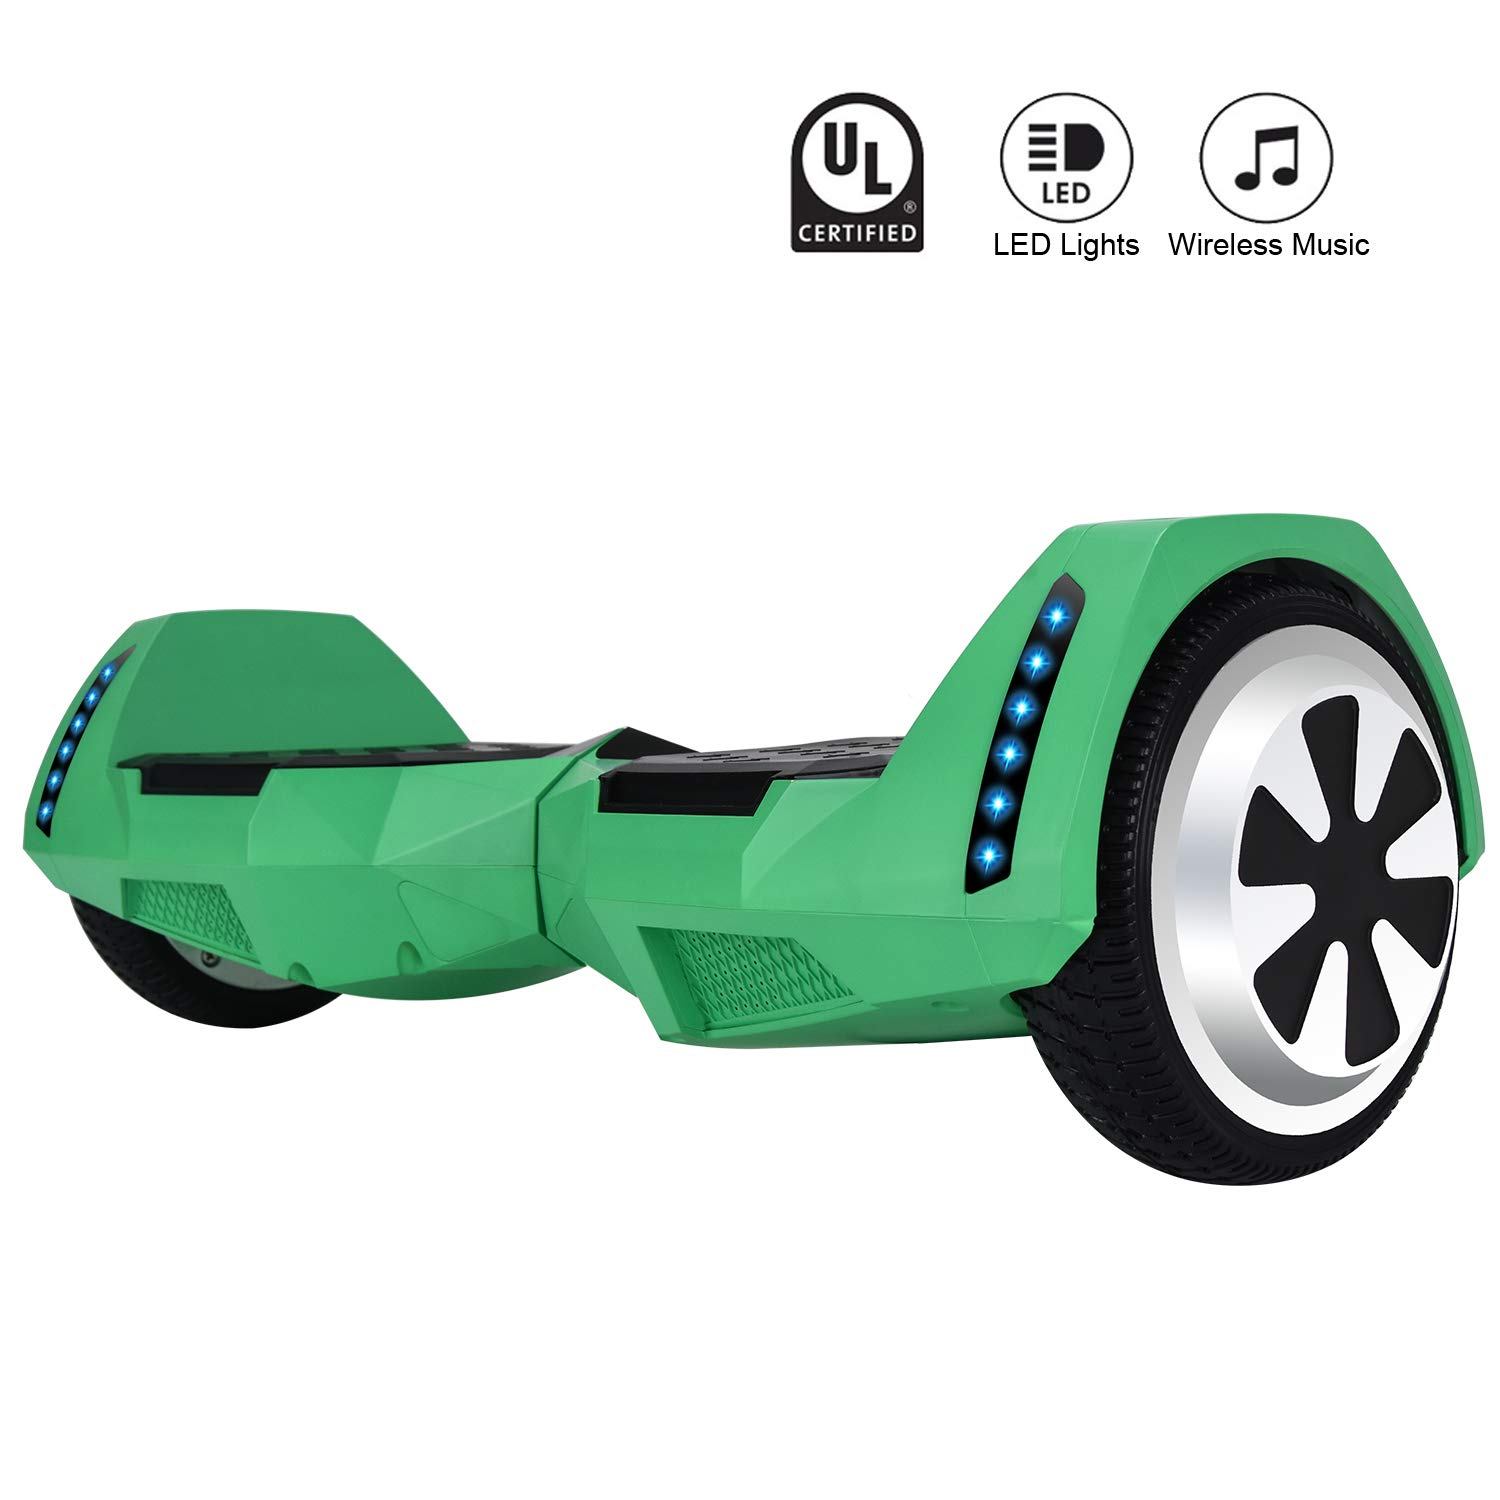 CXMScooter Bluetooth Enabled 6.5 inch Self Balancing Hoverboard with Built-in Wireless Speaker,250Watt Dual Motors and LED Side Lights for Kids and Adults...